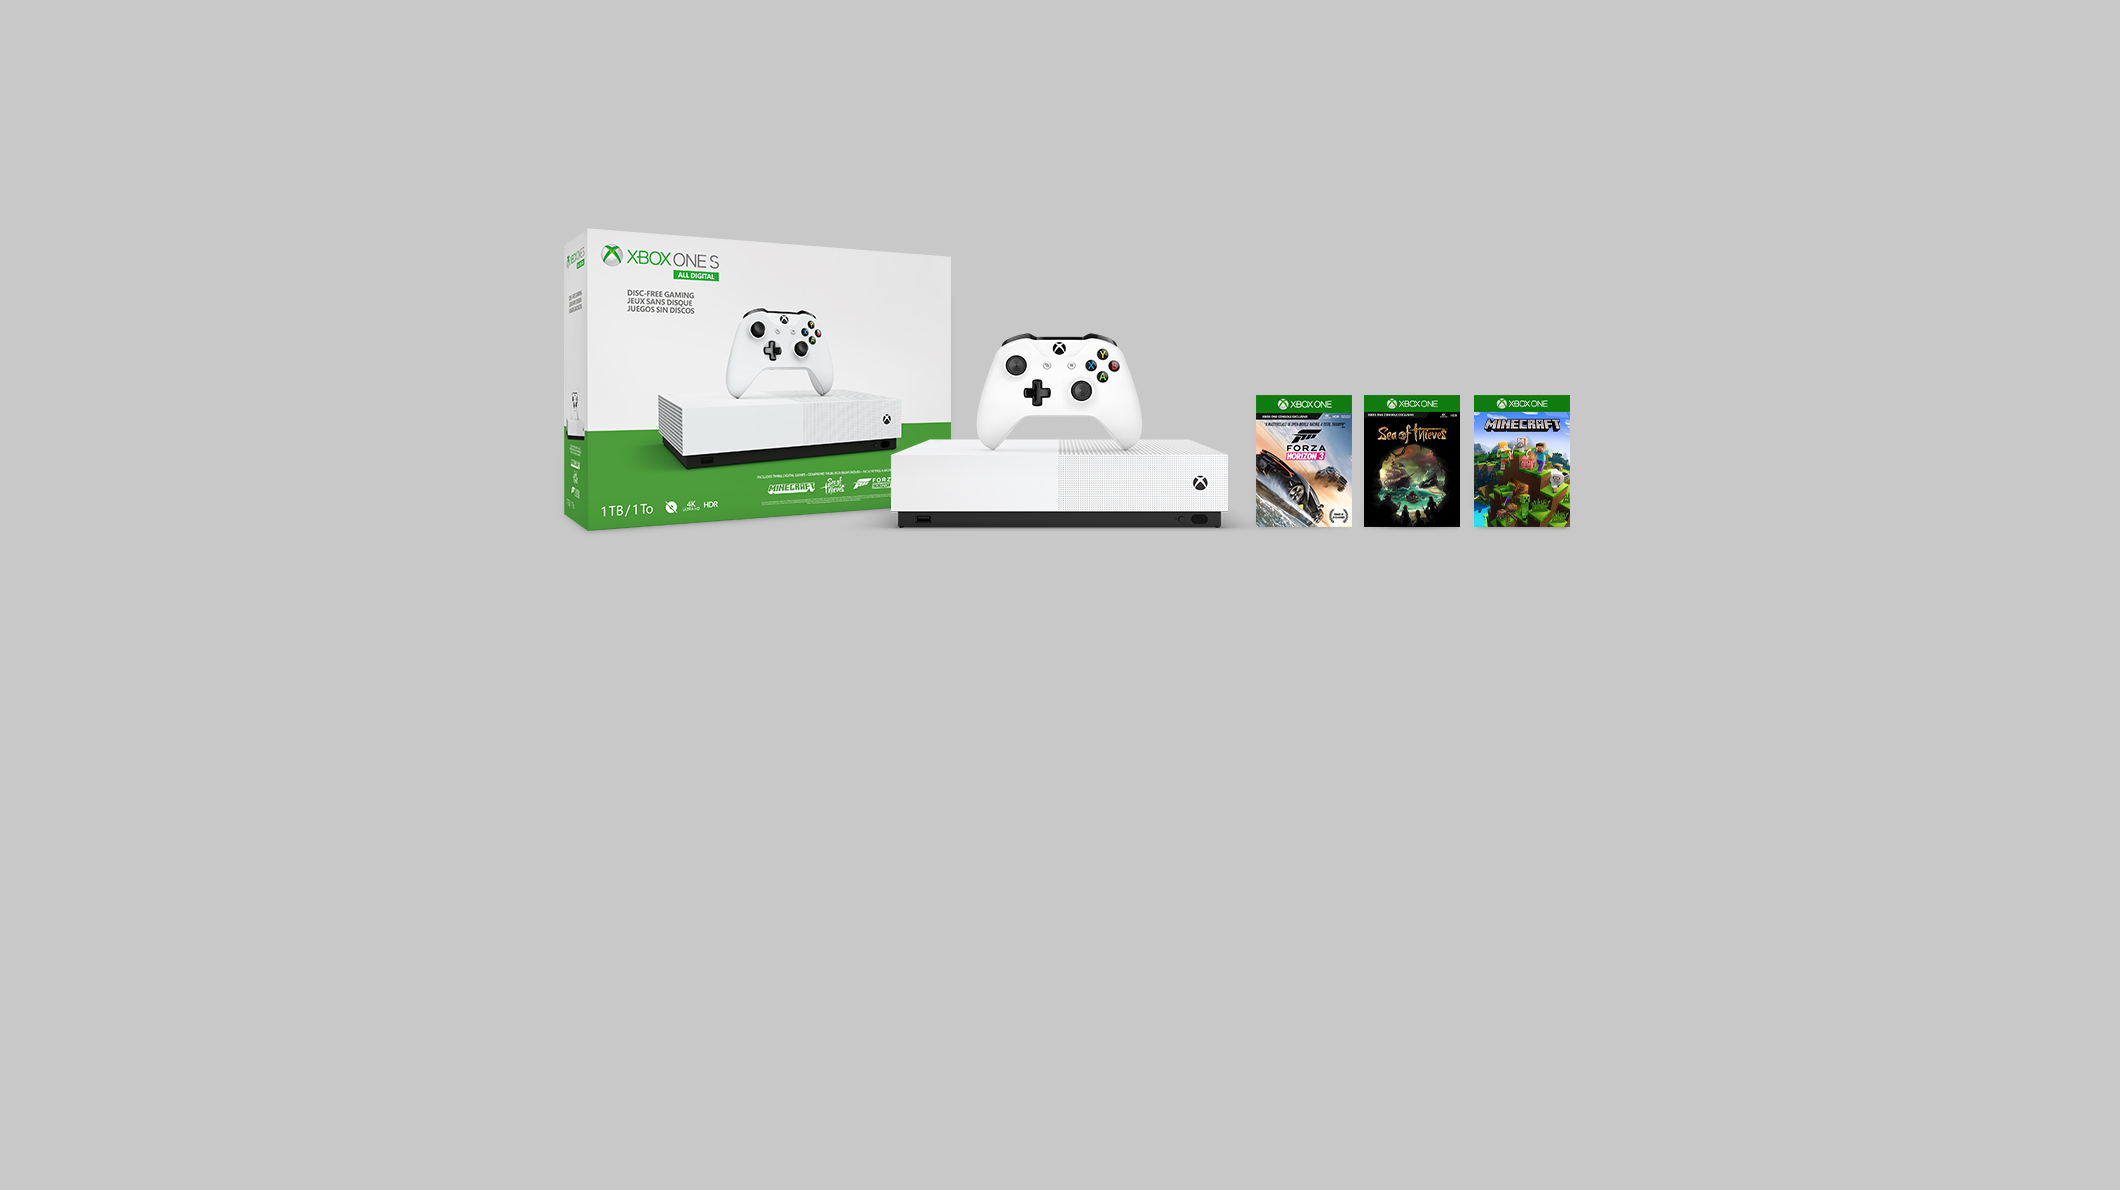 New Xbox One S All-Digital Edition console displaying pre-loaded game titles: Forza Horizon 3, Sea of Thieves, Minecraft